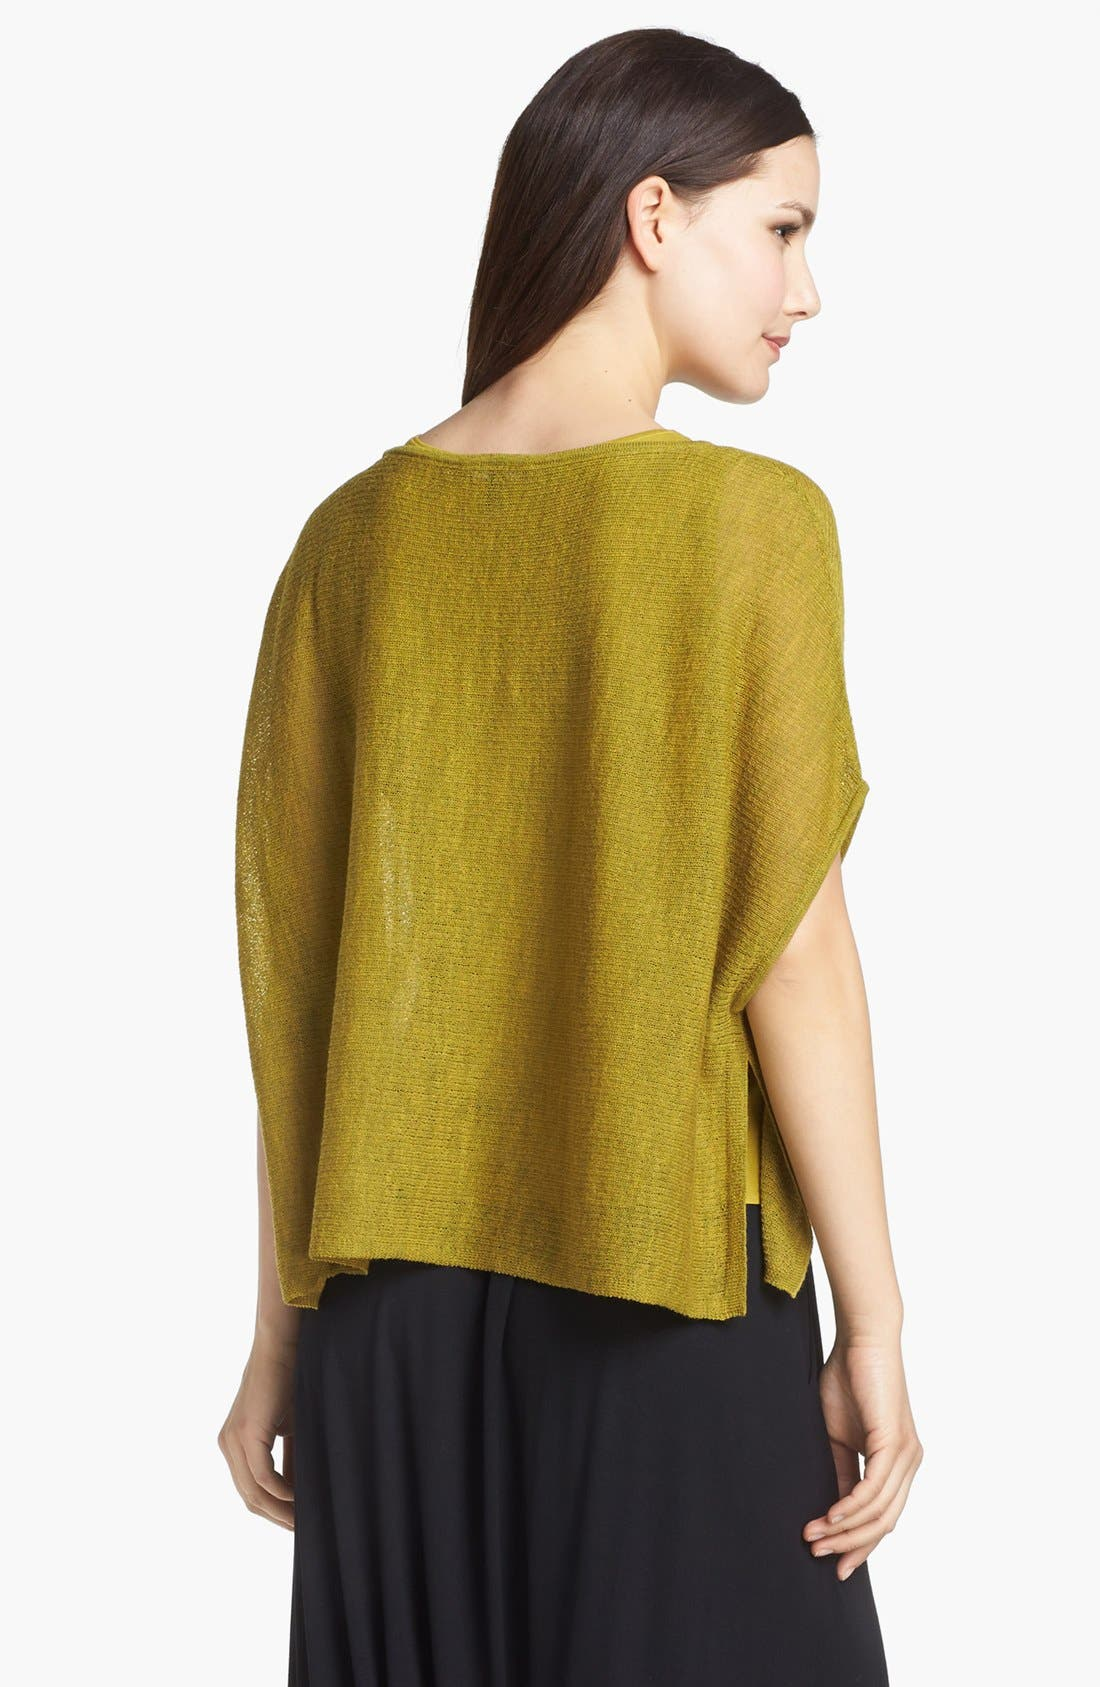 Alternate Image 2  - Eileen Fisher 'Ethereal Wool' Short Poncho Top (Petite)